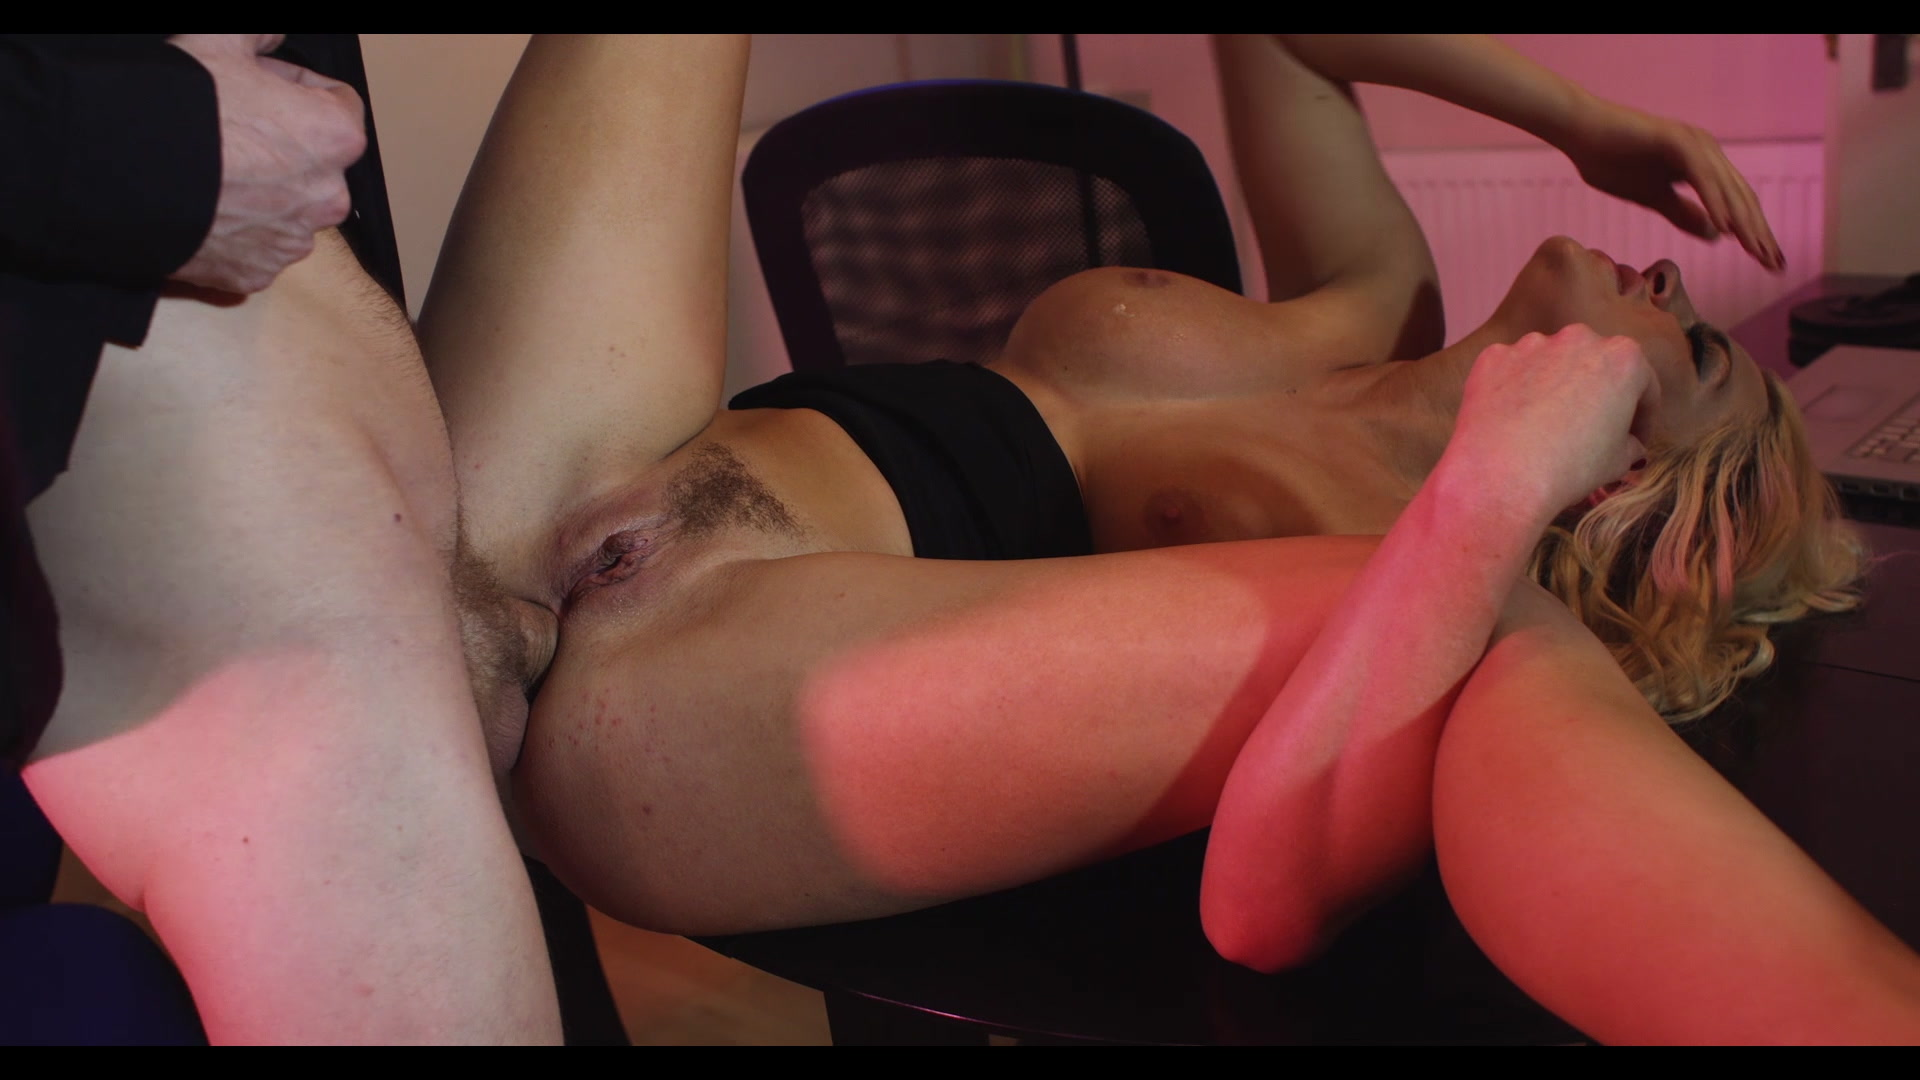 Scene with Sienna Day - image 12 out of 20